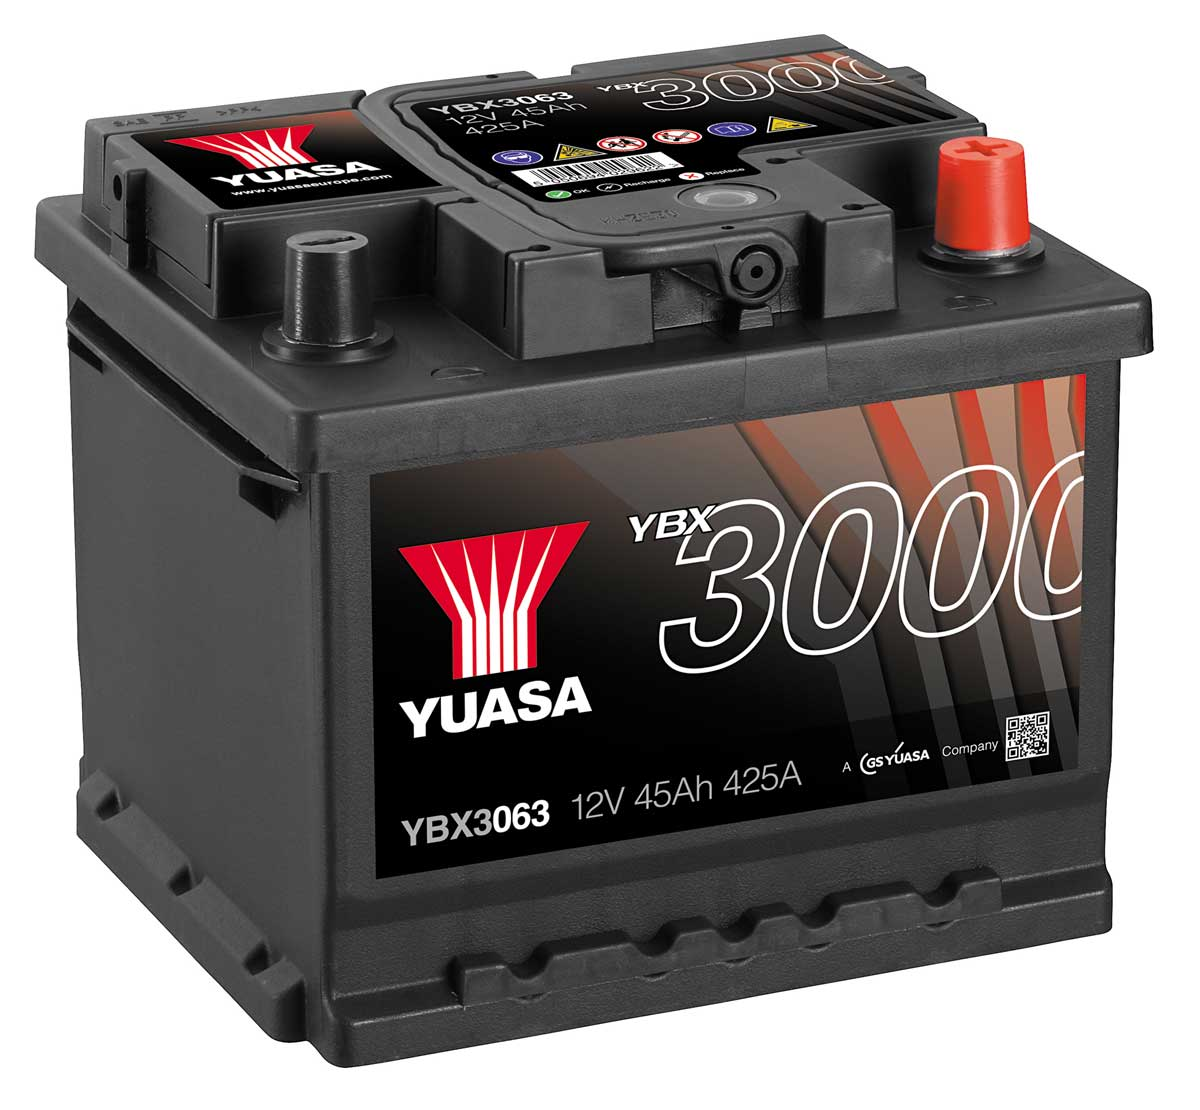 Yuasa Ybx3063 12v Car Battery Mds Battery